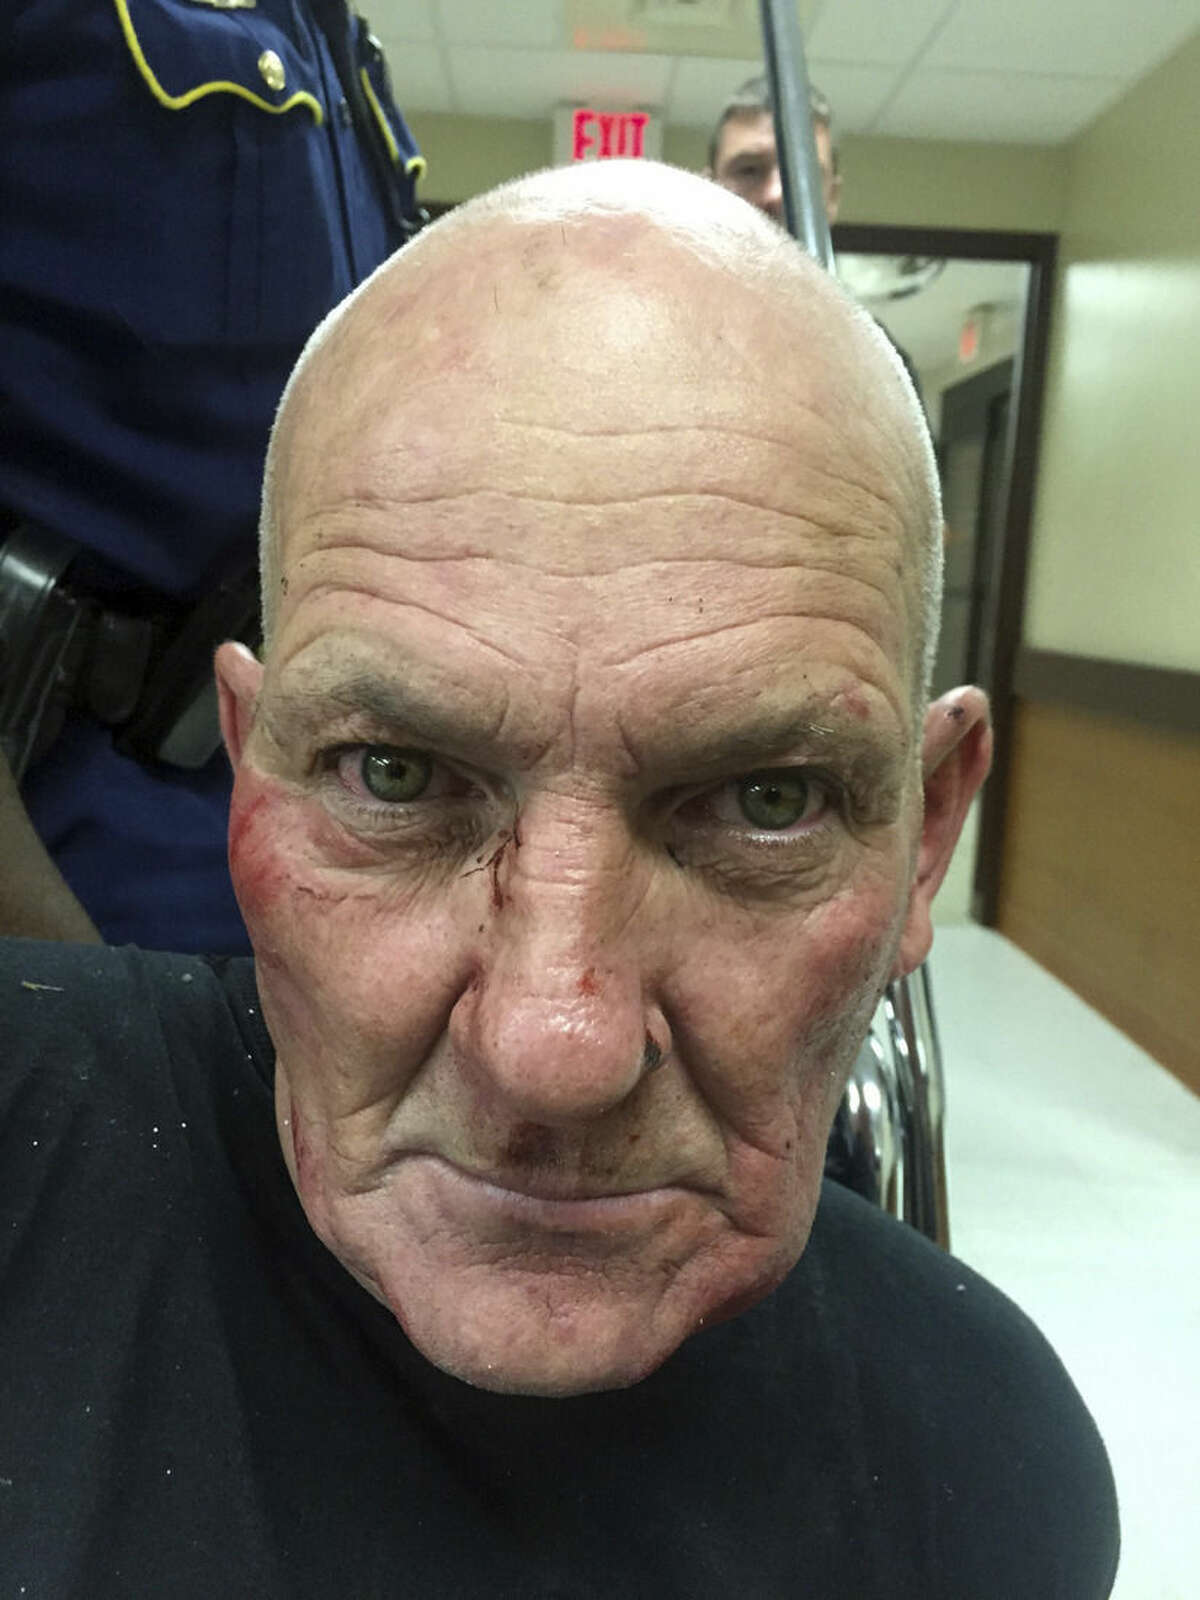 This photo released by the Louisiana State Police shows Kevin Daigle, 54, of Lake Charles, La. A Louisiana state trooper was shot in the head and critically injured Sunday, Aug. 23, 2015, during a struggle with a man whose pickup truck had run into a ditch after being reported as driving erratically, Louisiana State Police said. Col. Michael Edmonson, head of state police, said the arrested man. Col. Mike Edmonson, head of the Louisiana State Police, says 43-year-old Senior Trooper Steven Vincent died Monday, Aug. 24, 2015, at a hospital in Lake Charles, La. (Louisiana State Police via AP)